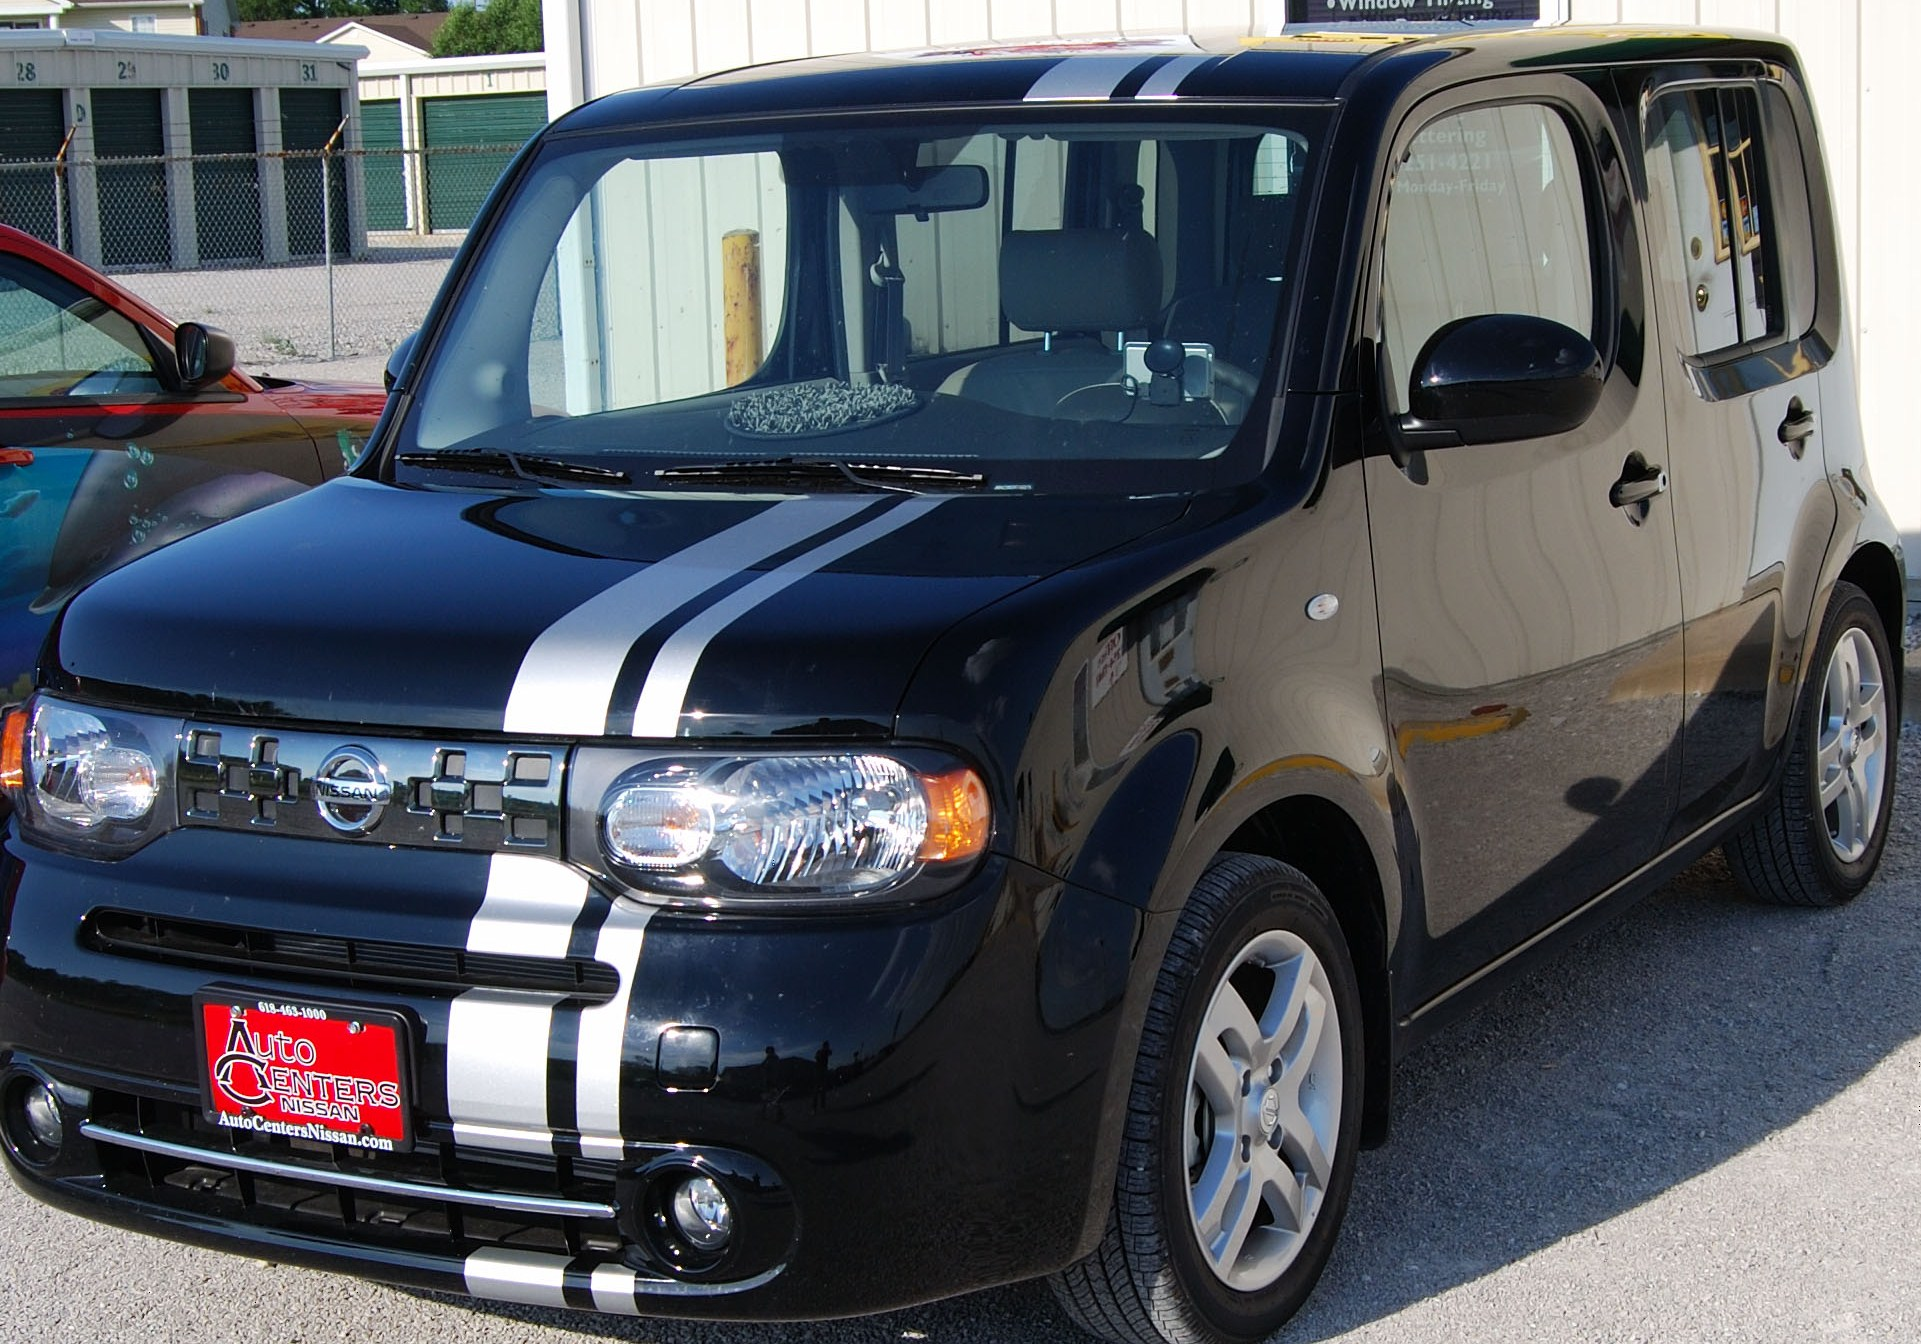 Nissan Cube Offset rally stripes